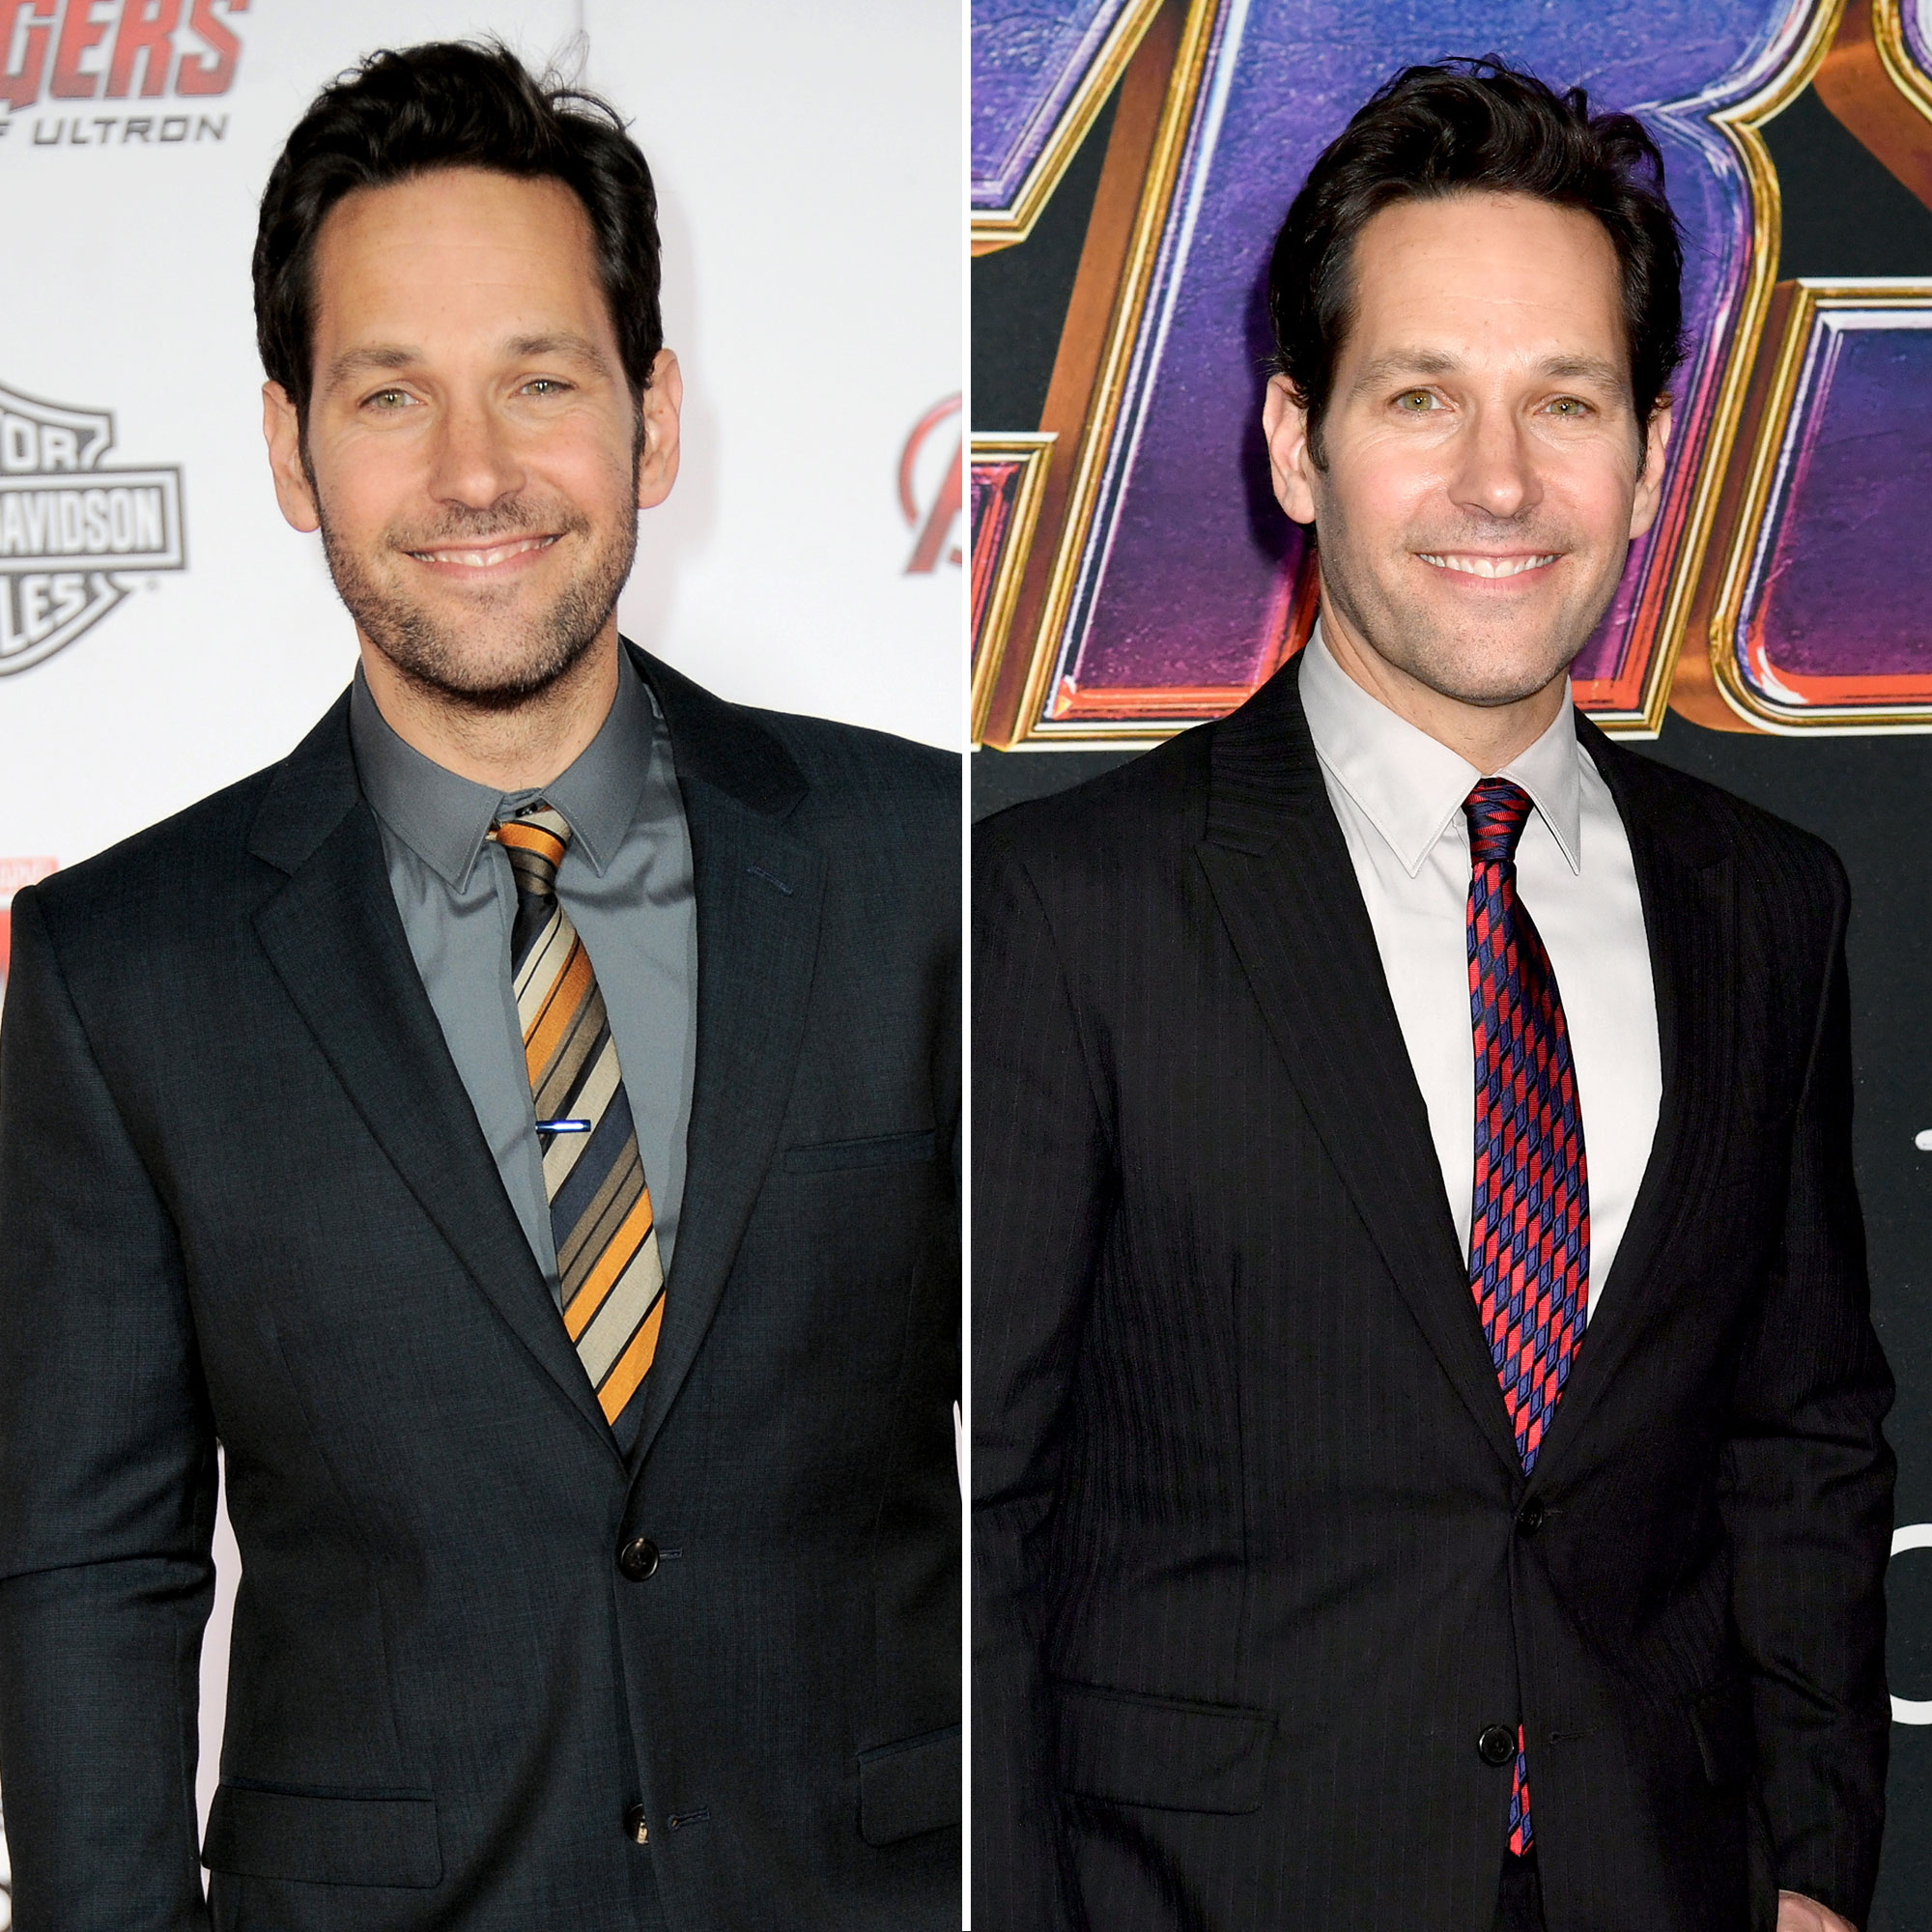 Paul Rudd Avengers Premiere First Super Red Carpet to Their Last - The Ant-Man star, who was introduced to the franchise with his own standalone film in 2015, walked the carpet at the Avengers: Age of Ultron premiere that same year, perhaps forshadowing his character's involvement in Endgame . Needless to say, Rudd , who has long been lauded for his agelessness , appeared nearly identical in the three years that have passed.